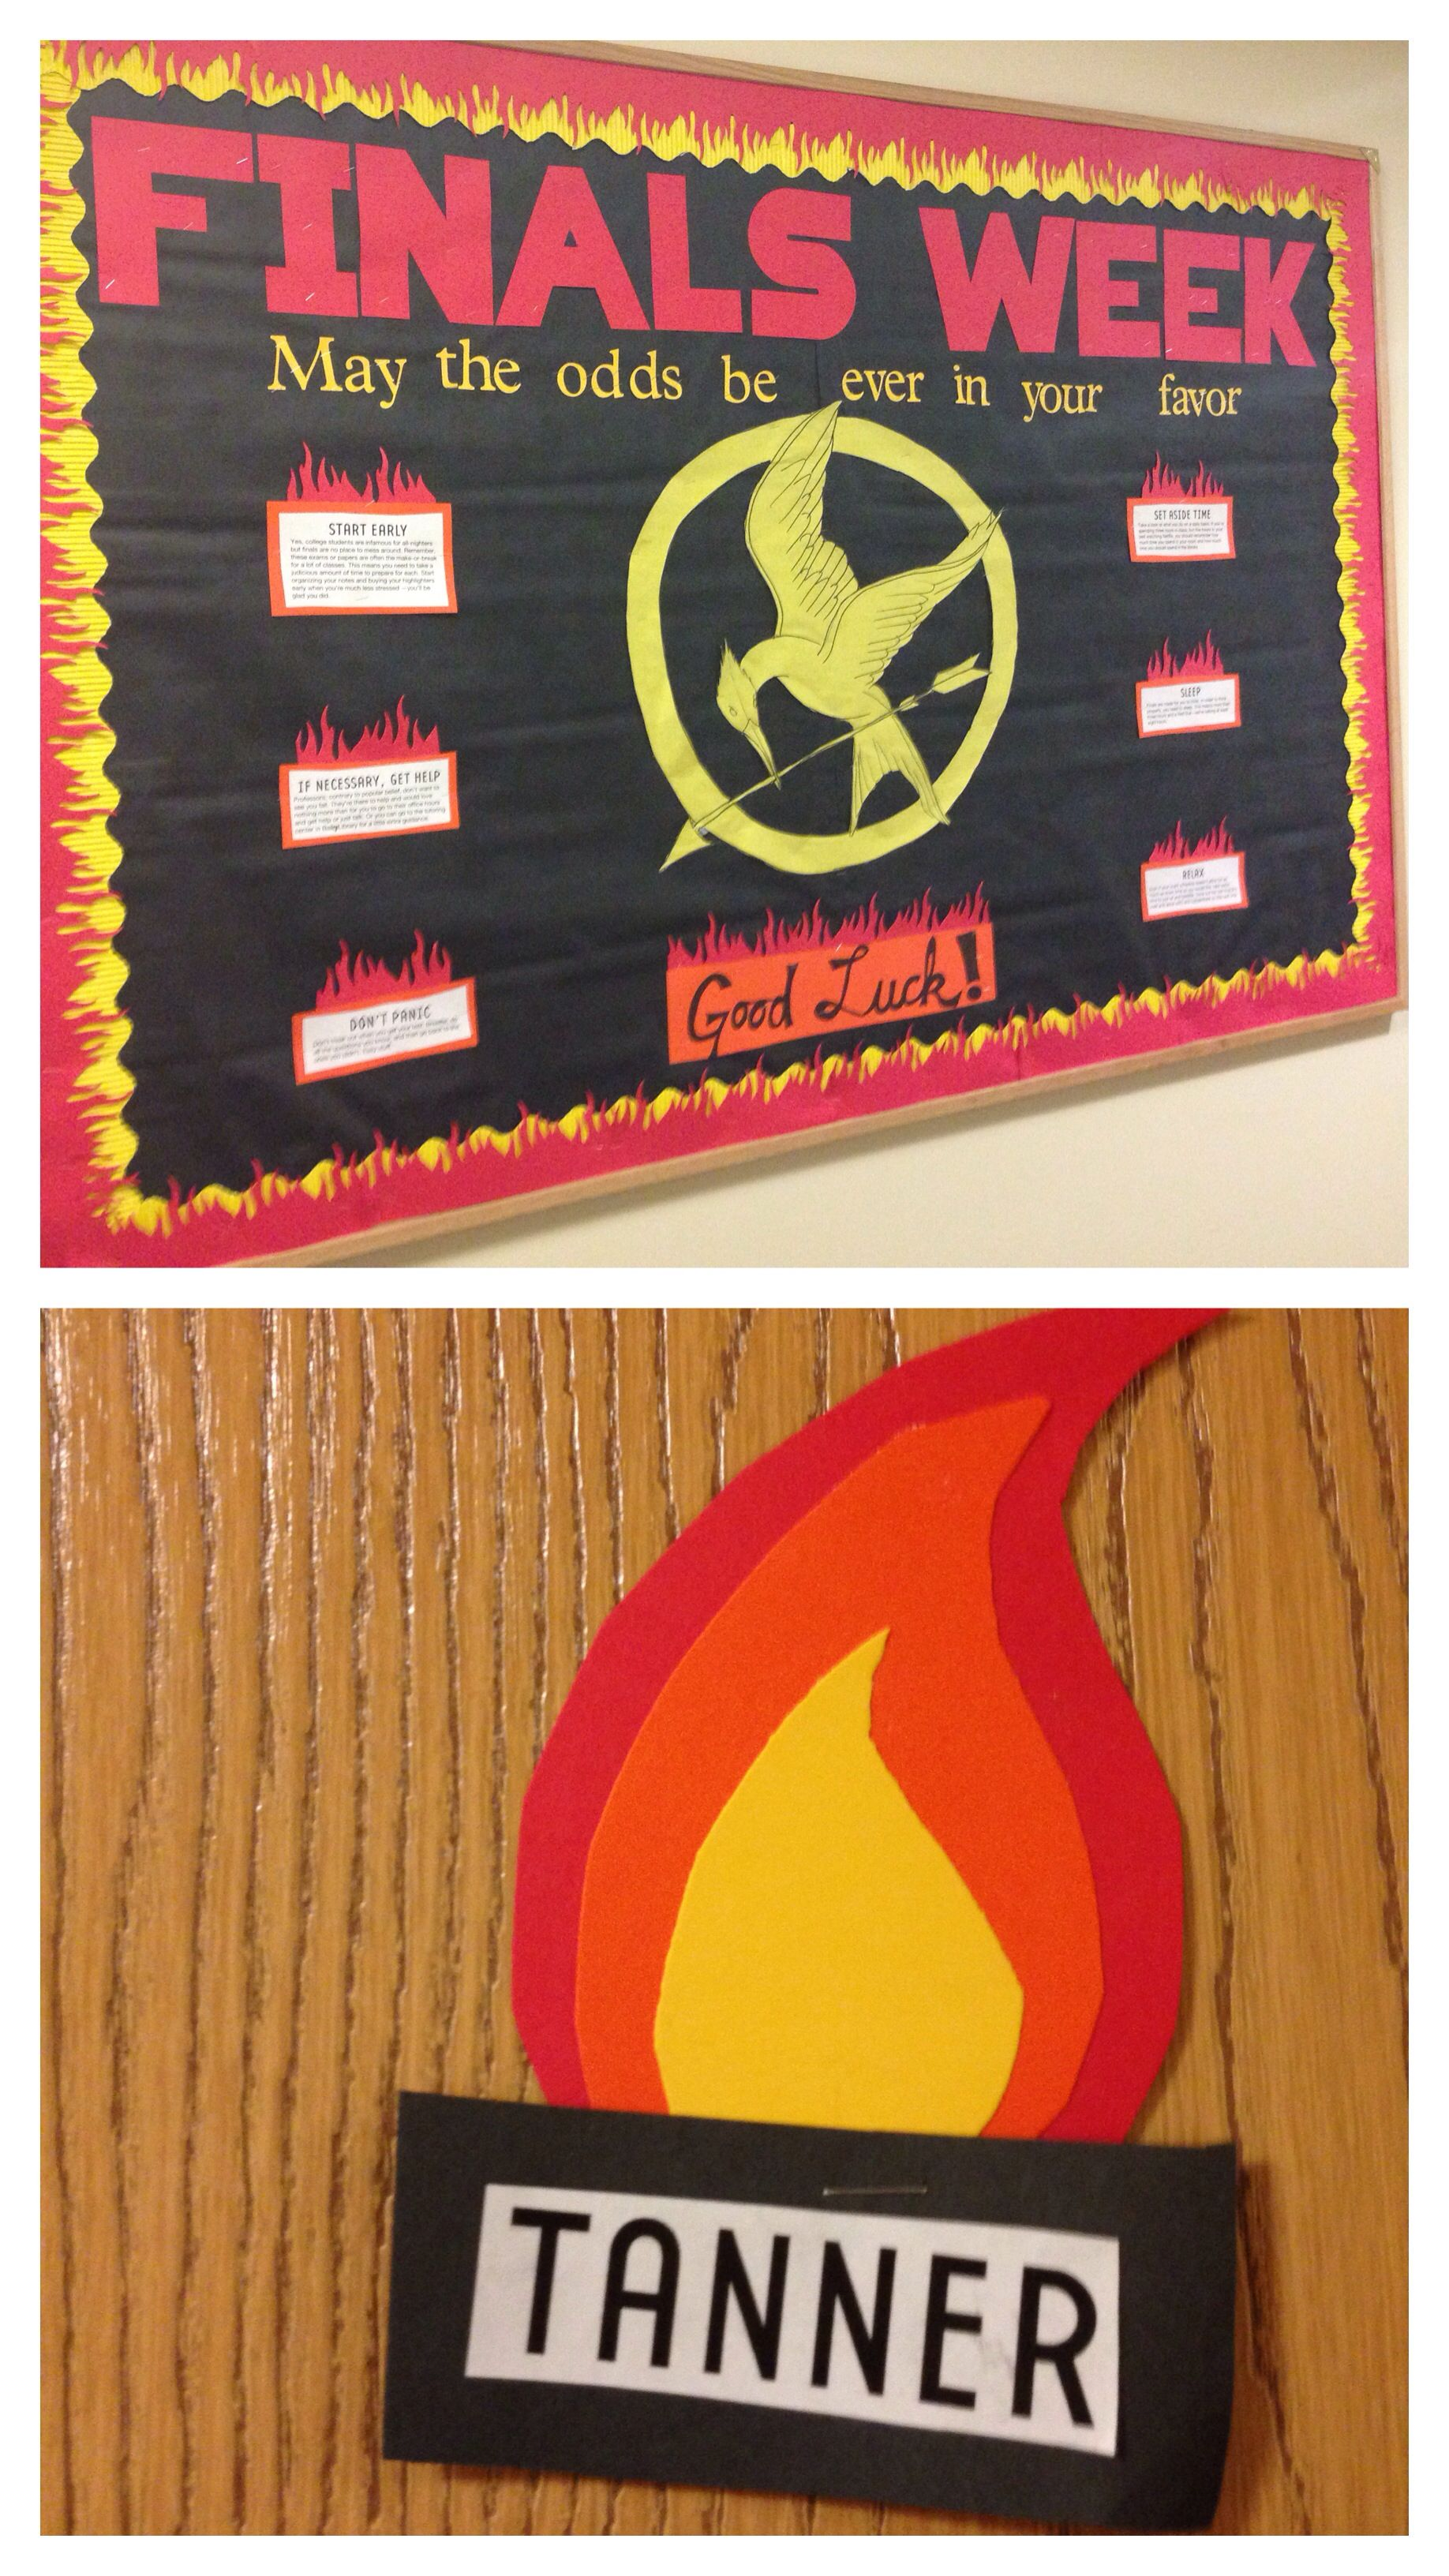 A Hunger Games Themed Bulletin Board For Finals Week Ra